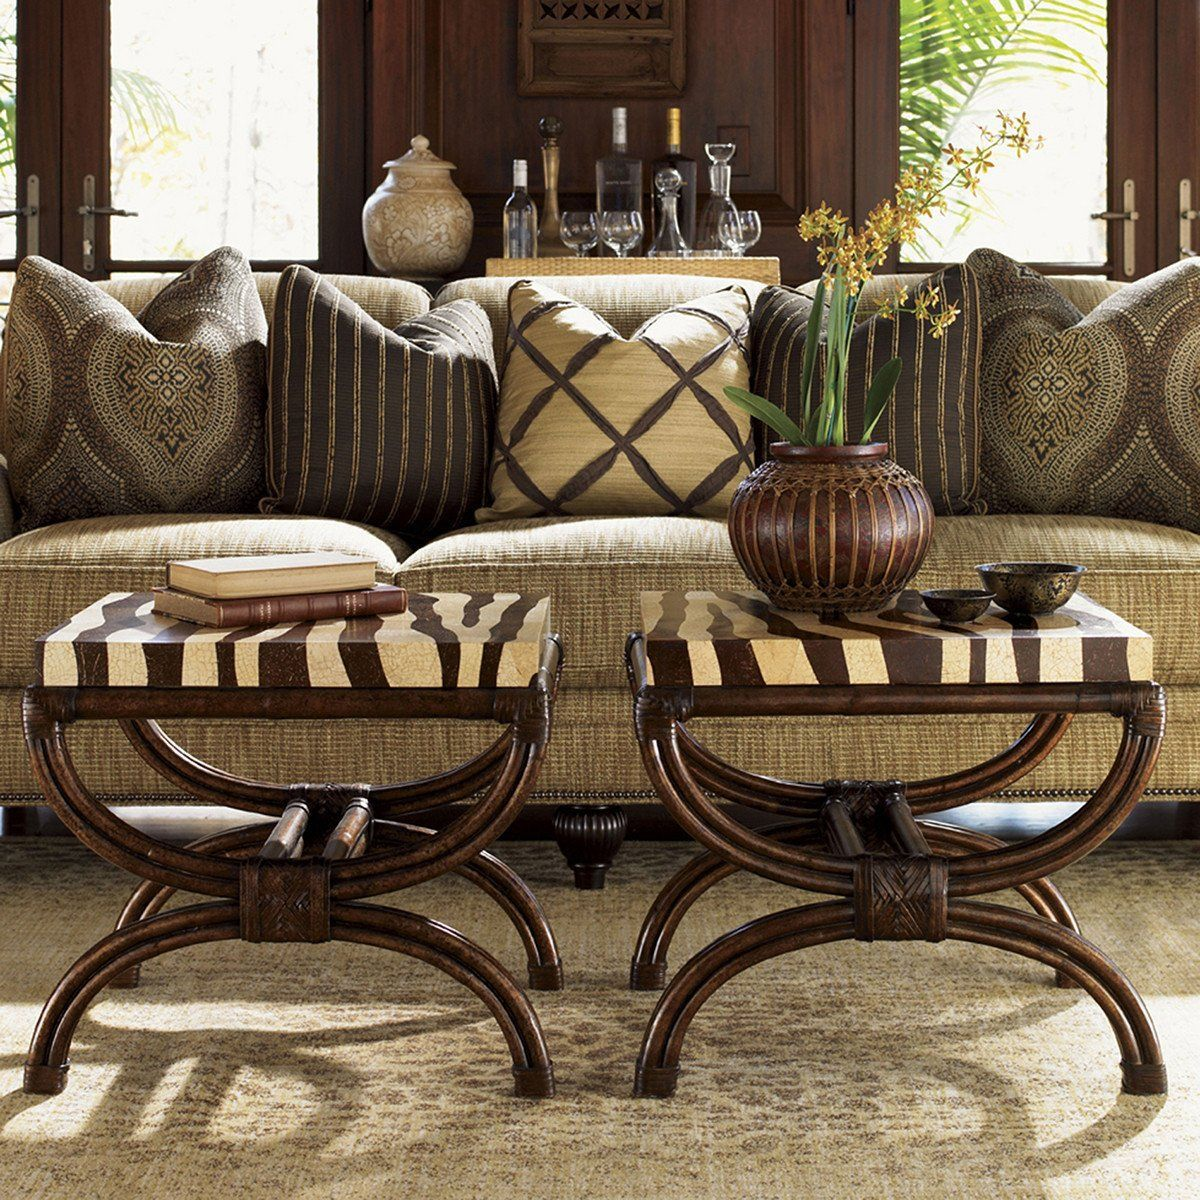 tommy bahama royal kahala striped delight accent table zebra borrowing from asian pacific theme the home introduces charming touch casual room modern interior design ideas hampton